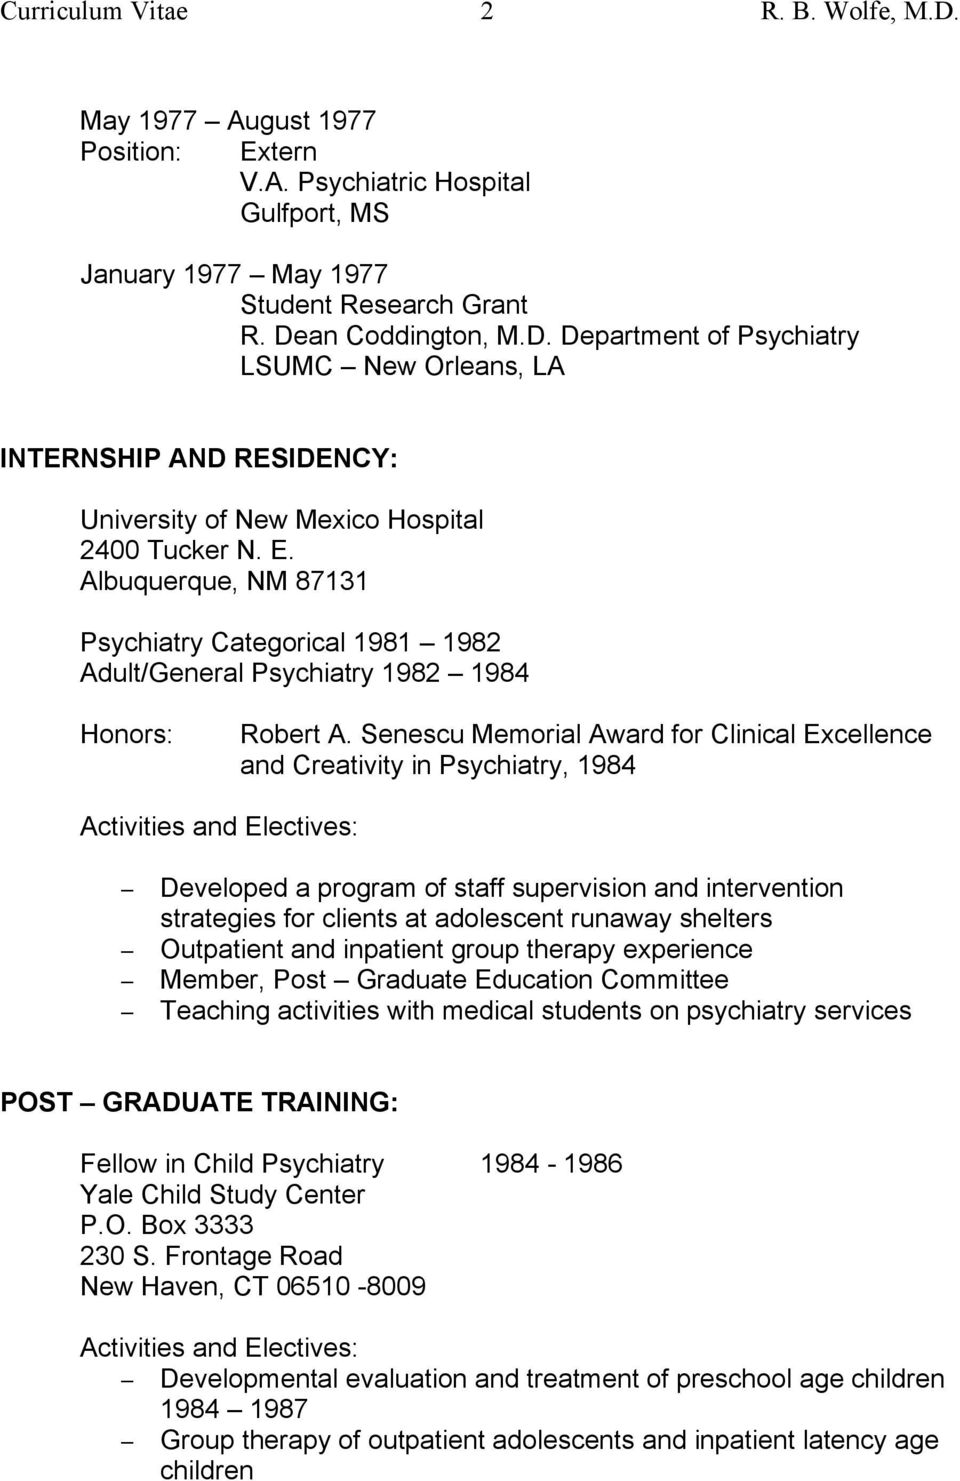 Russell B Wolfe, M D  Child, Adolescent and Adult Psychiatry 831